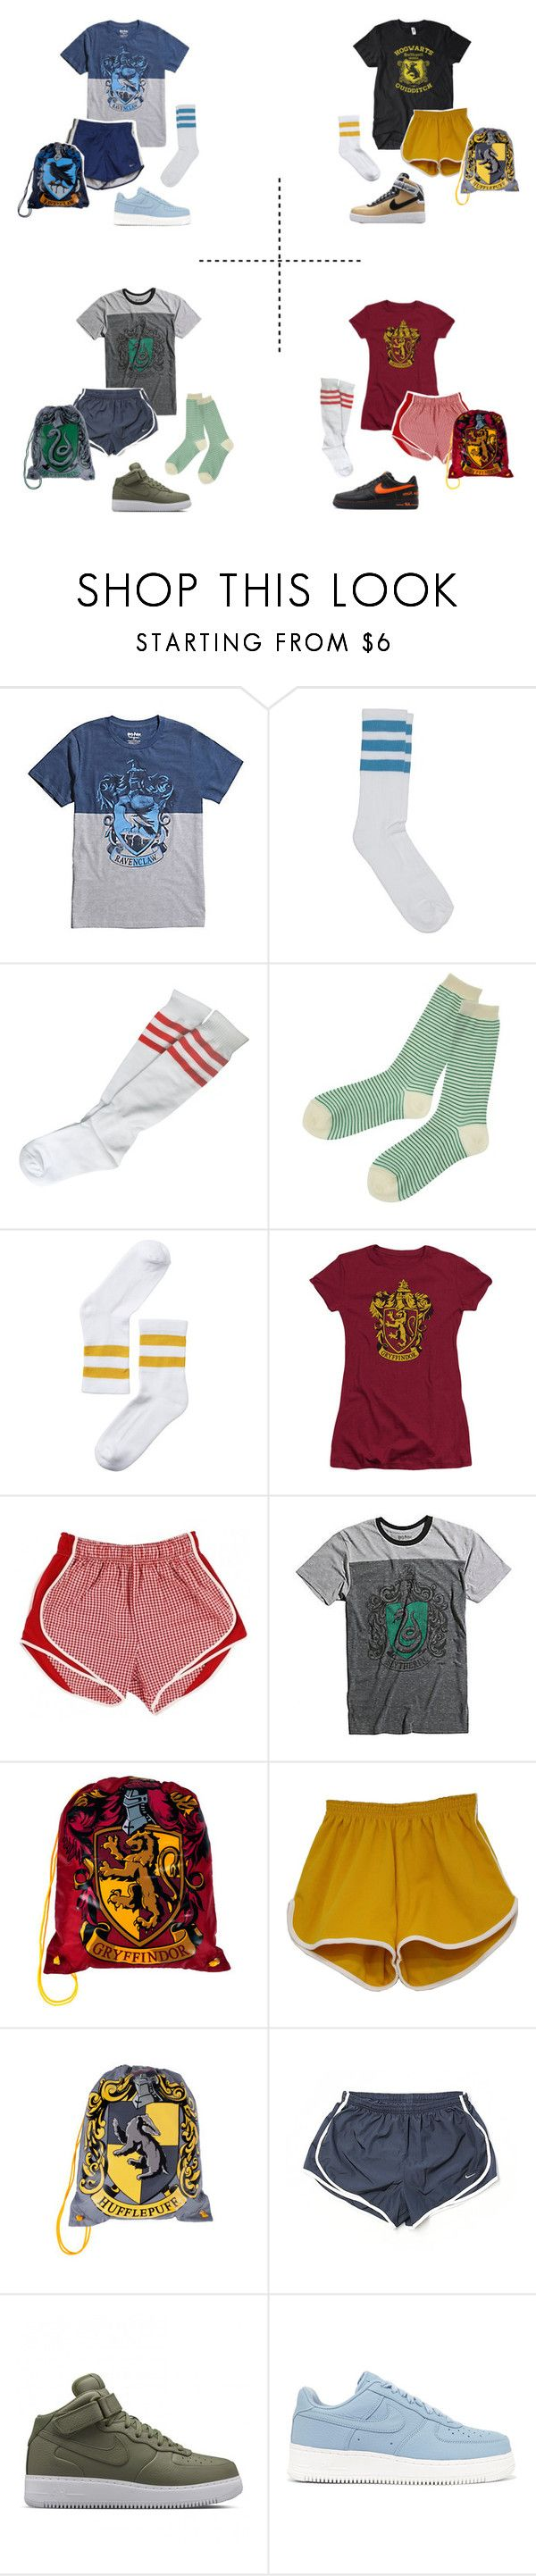 """""""hogwarts houses ; gym class"""" by ultimate-guide-to-harry-potter ❤ liked on Polyvore featuring Hot Topic, American Apparel, Le Bac by united bamboo, Monki, NIKE and Haze"""